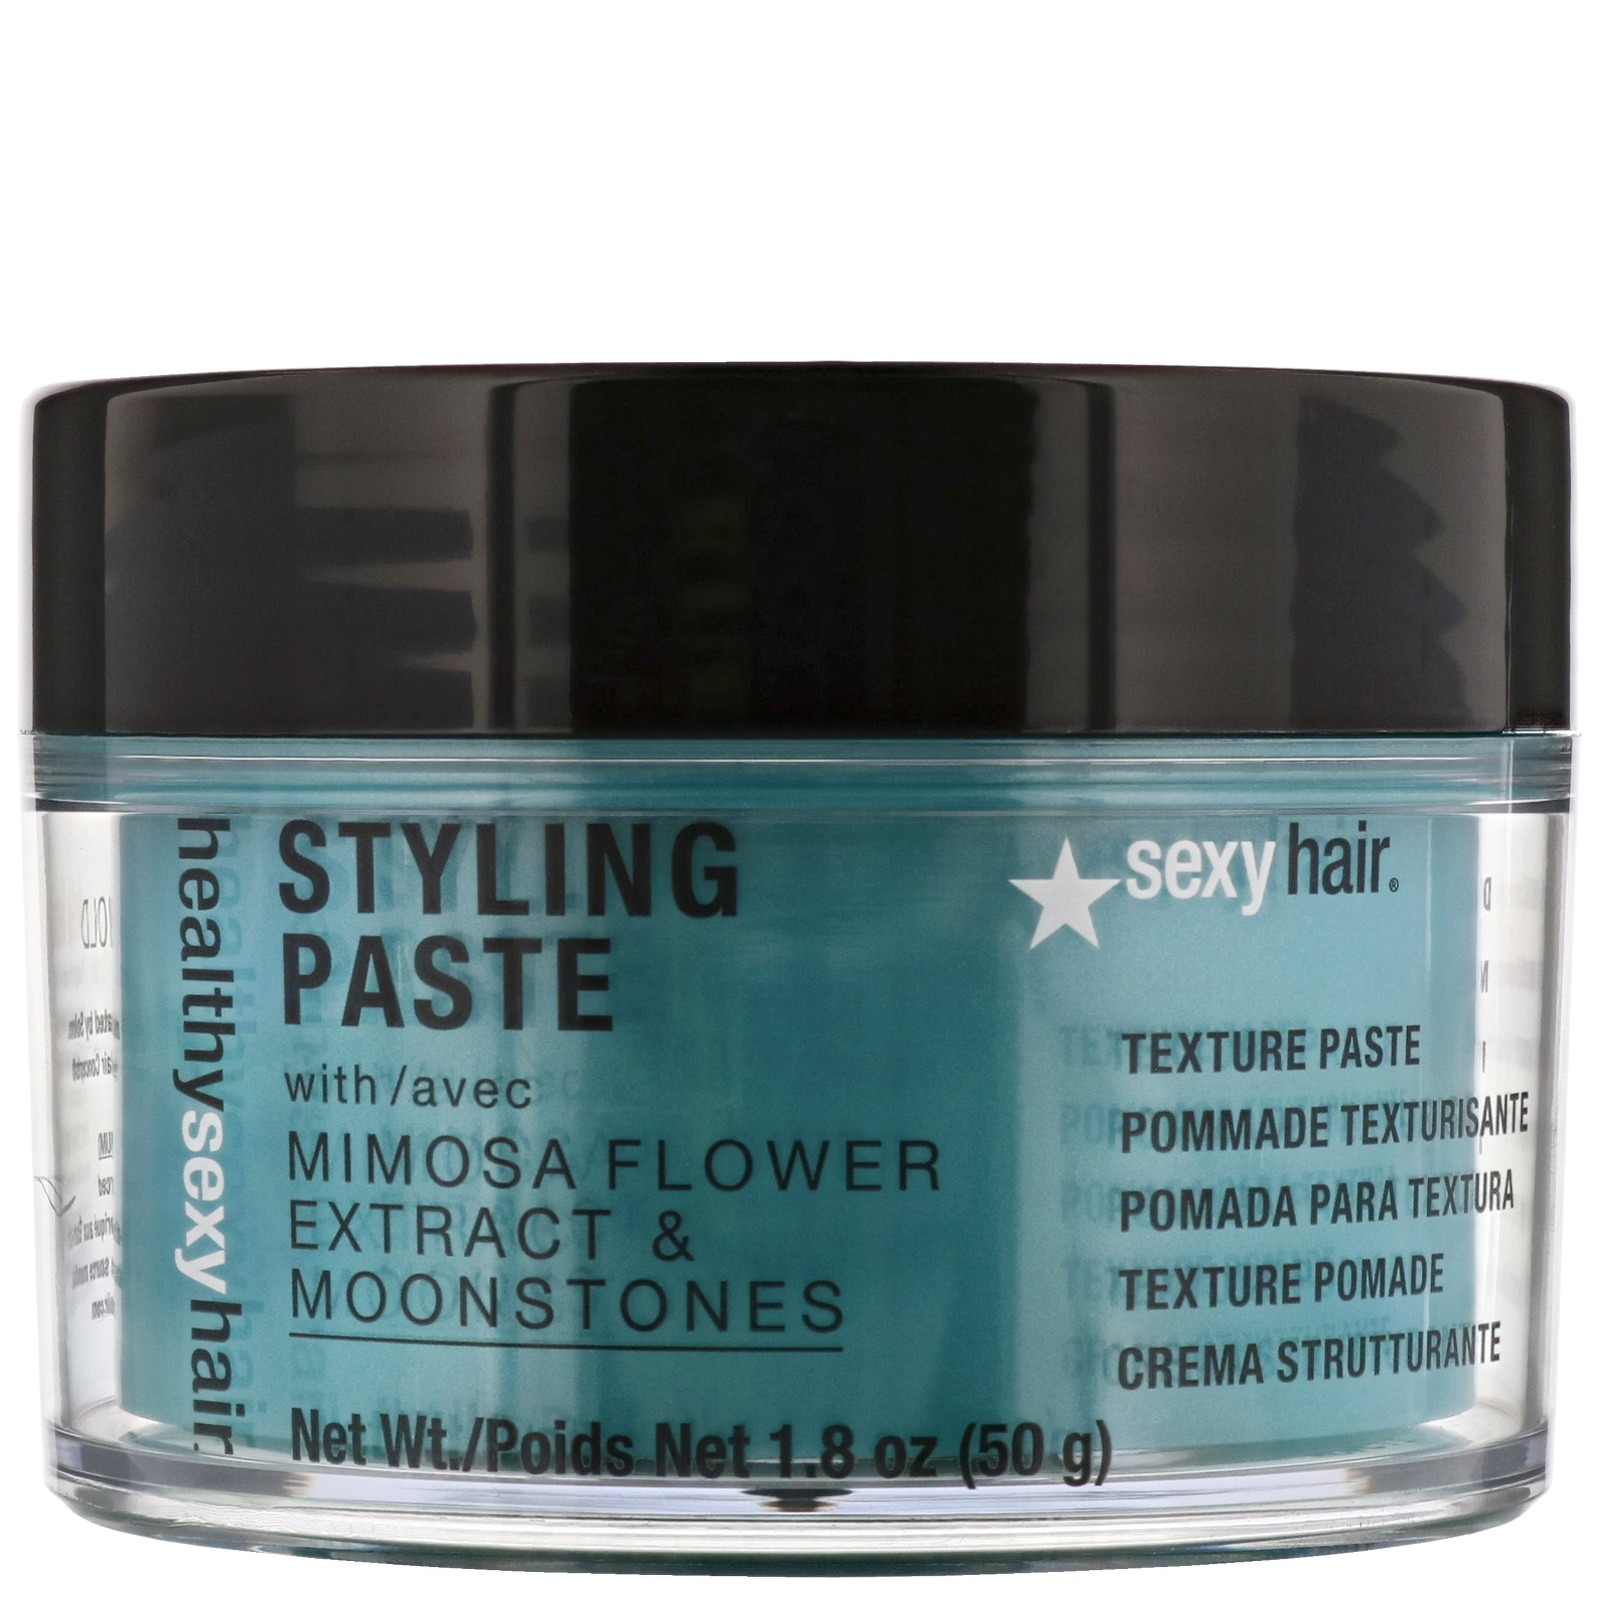 Sexy Hair Healthy Styling Paste 50g Haircare